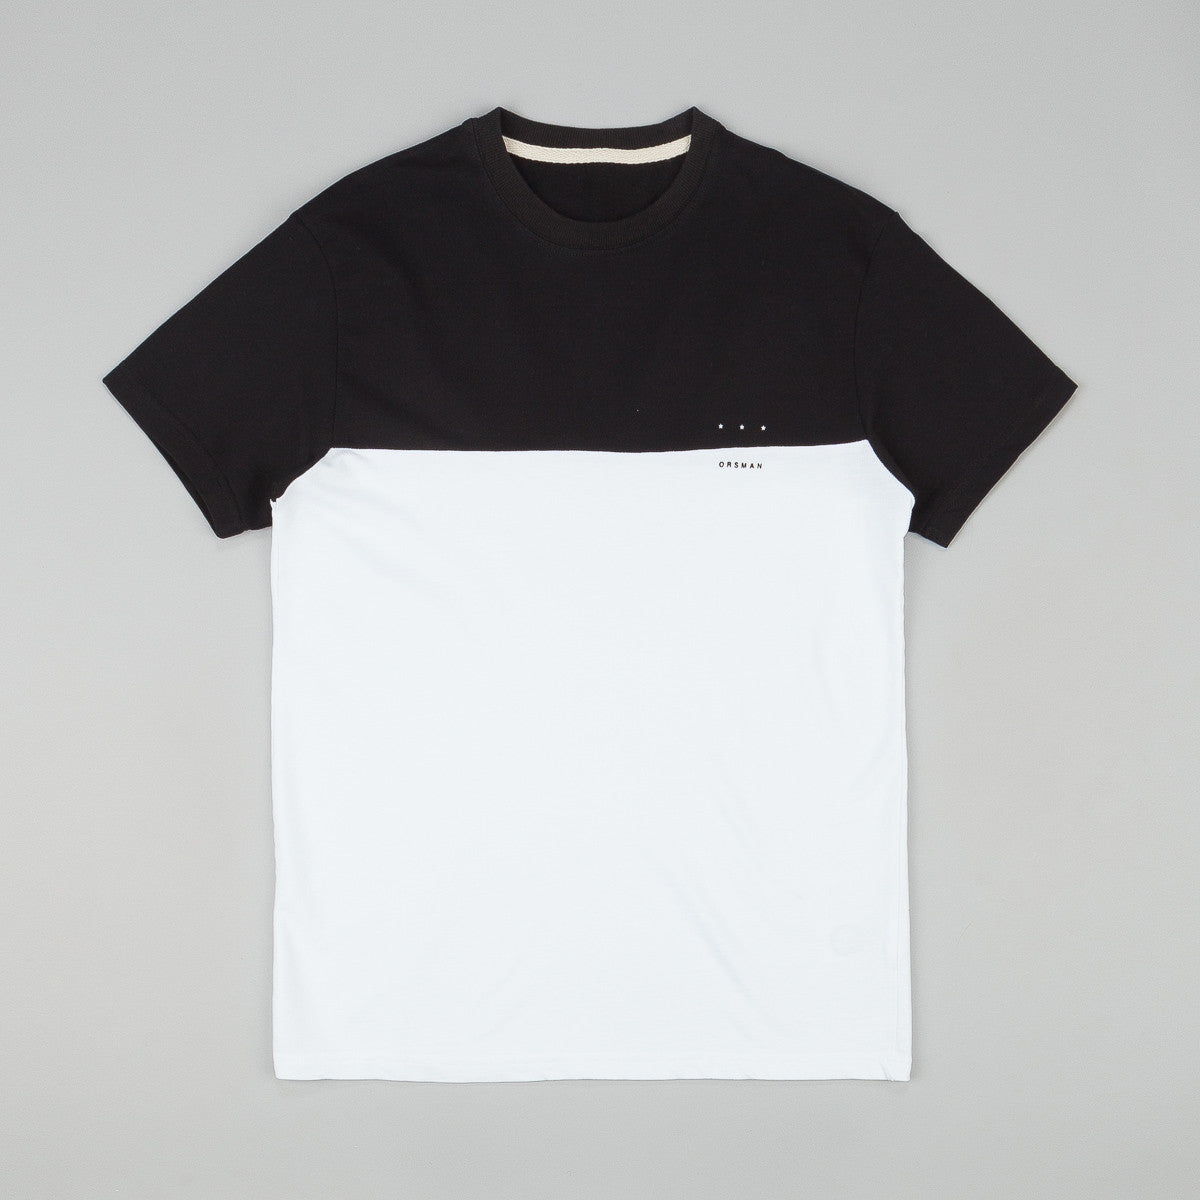 Orsman Quarter T-Shirt